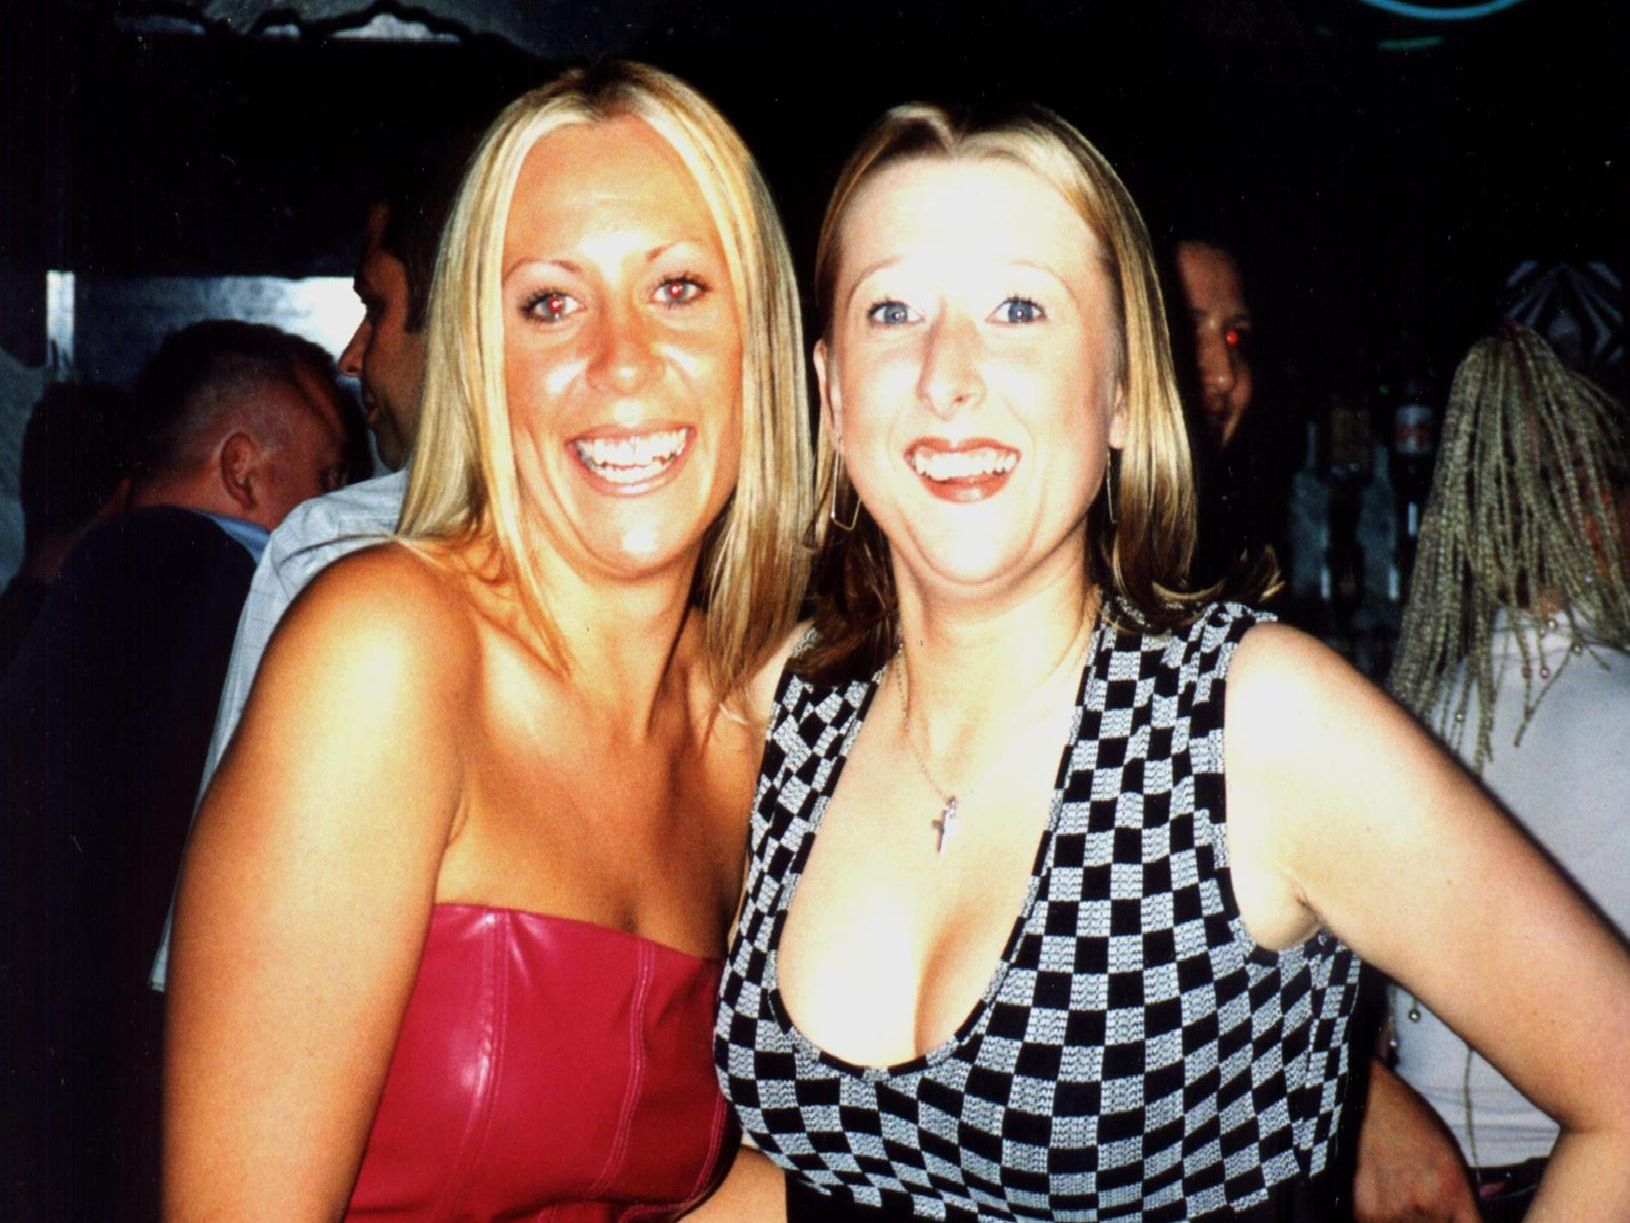 Party time at Karisma in 1999.